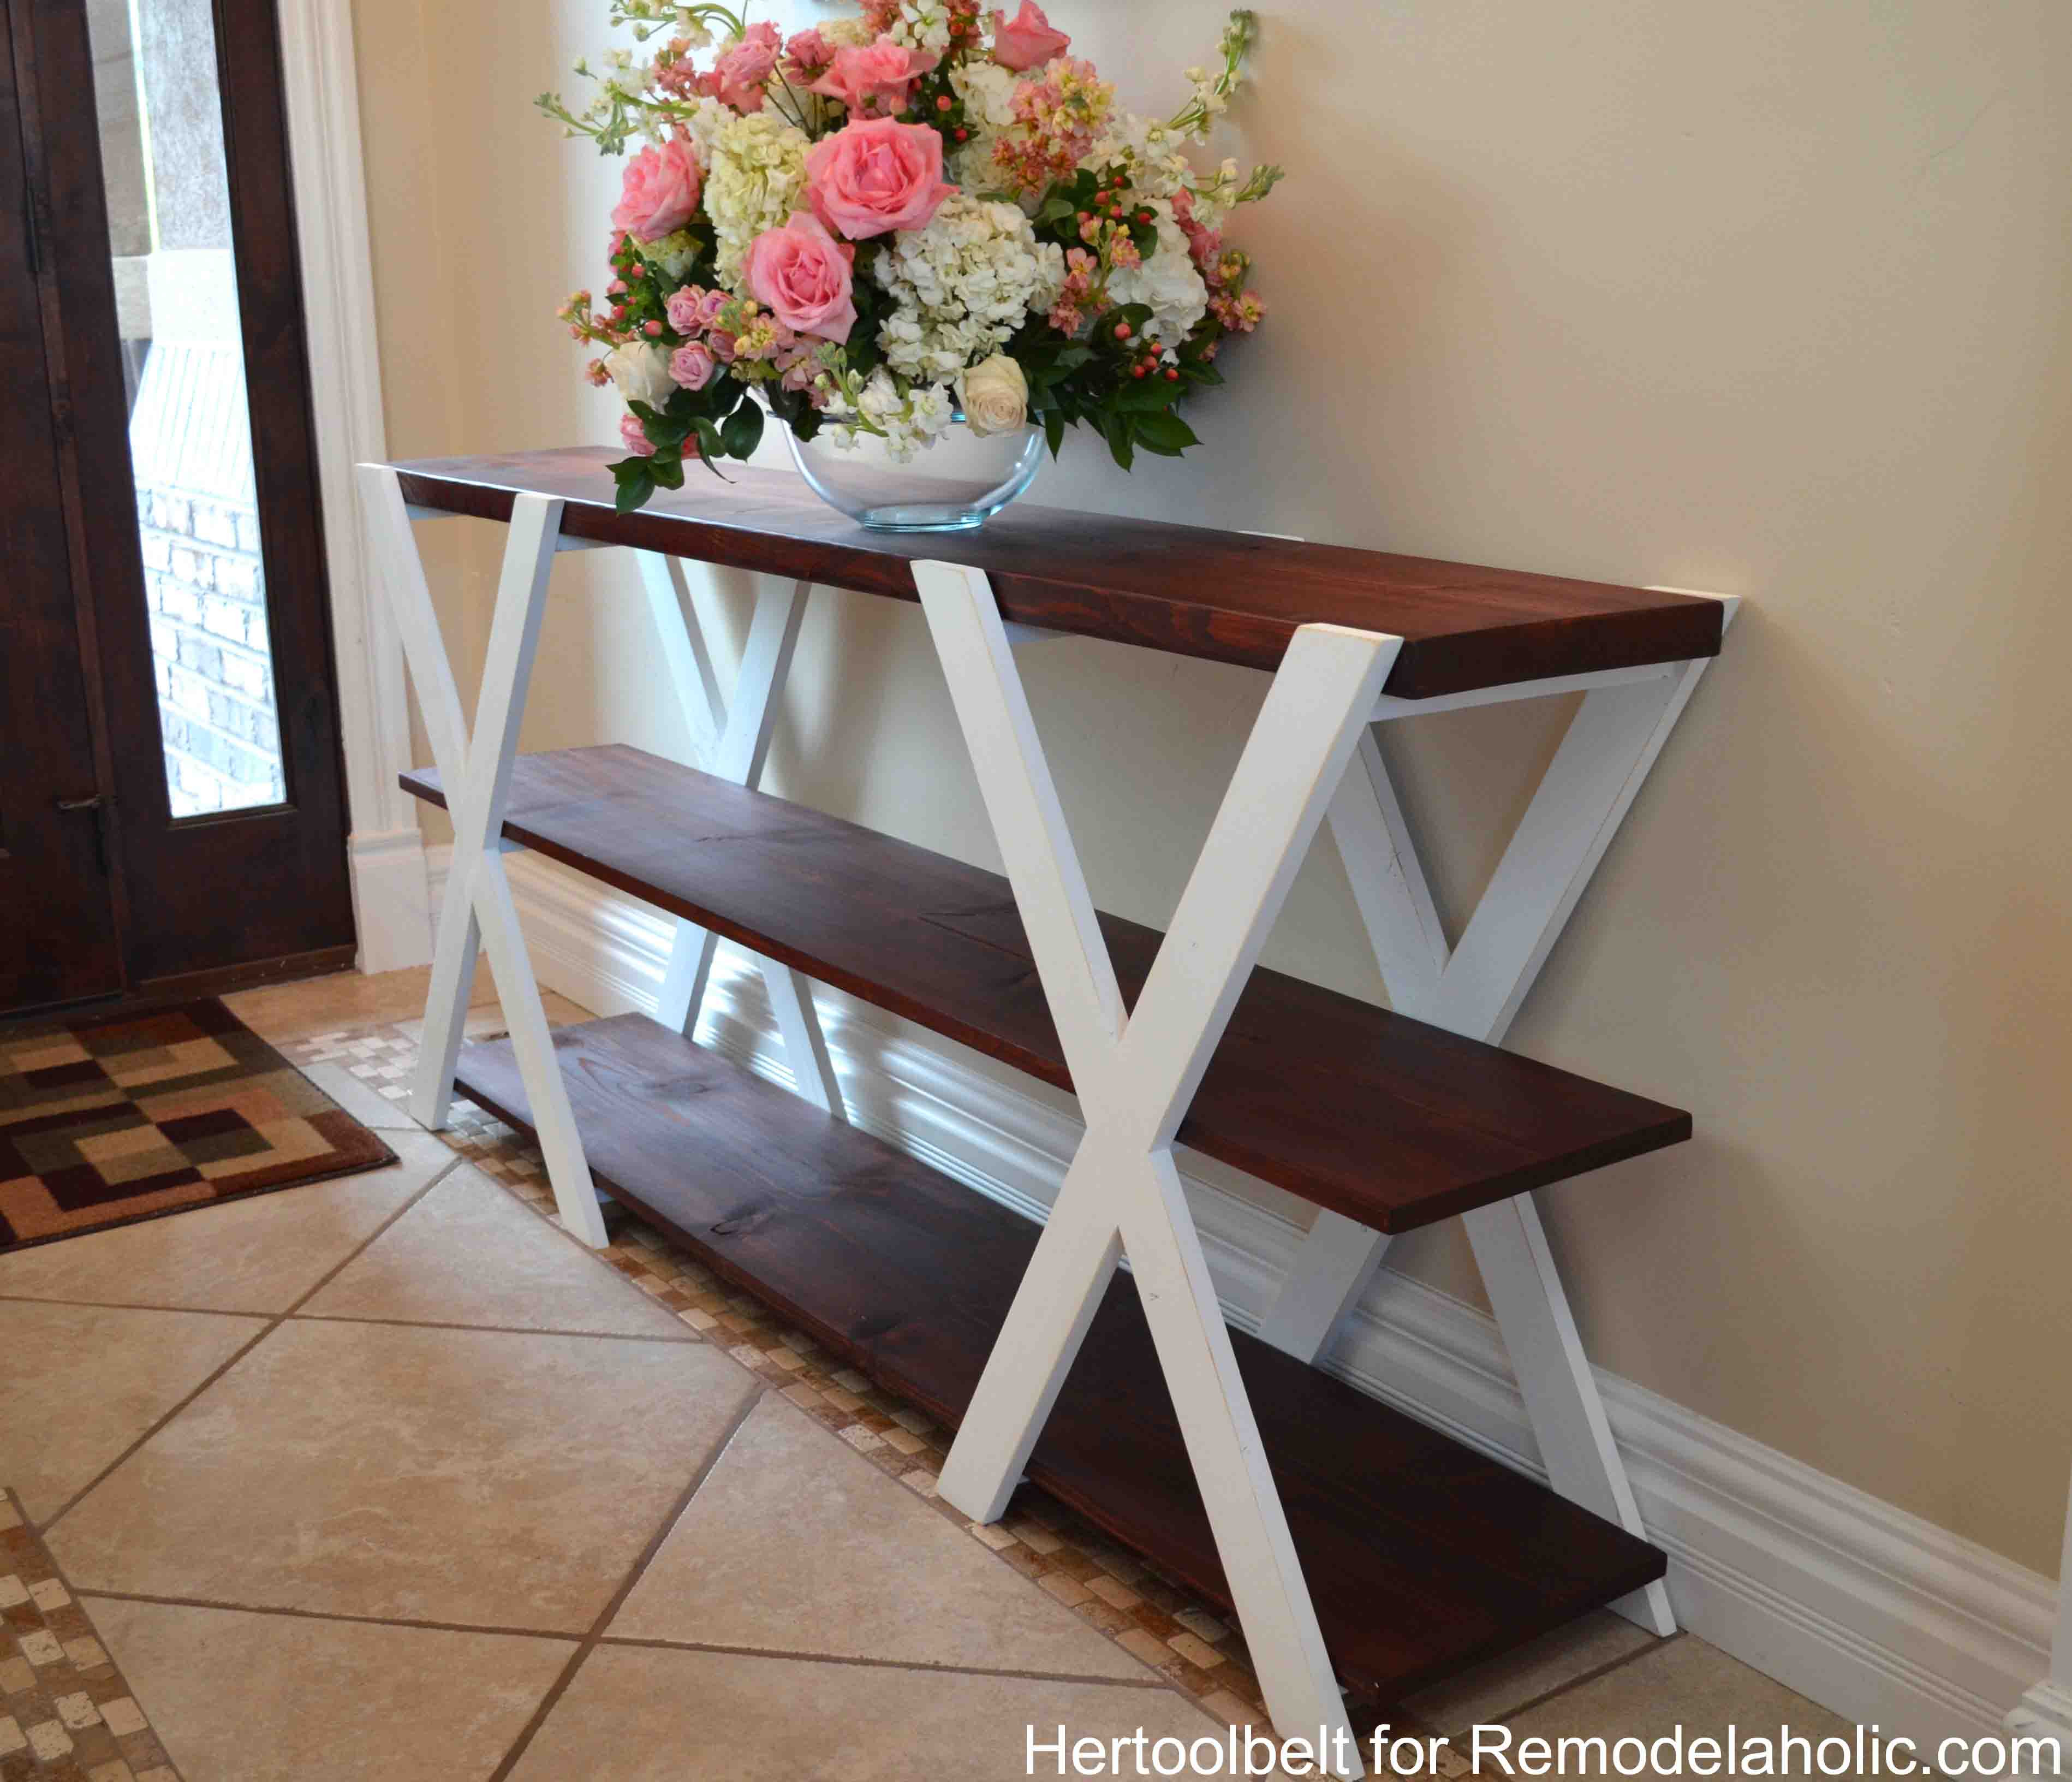 Best ideas about Console Table DIY . Save or Pin Remodelaholic Now.